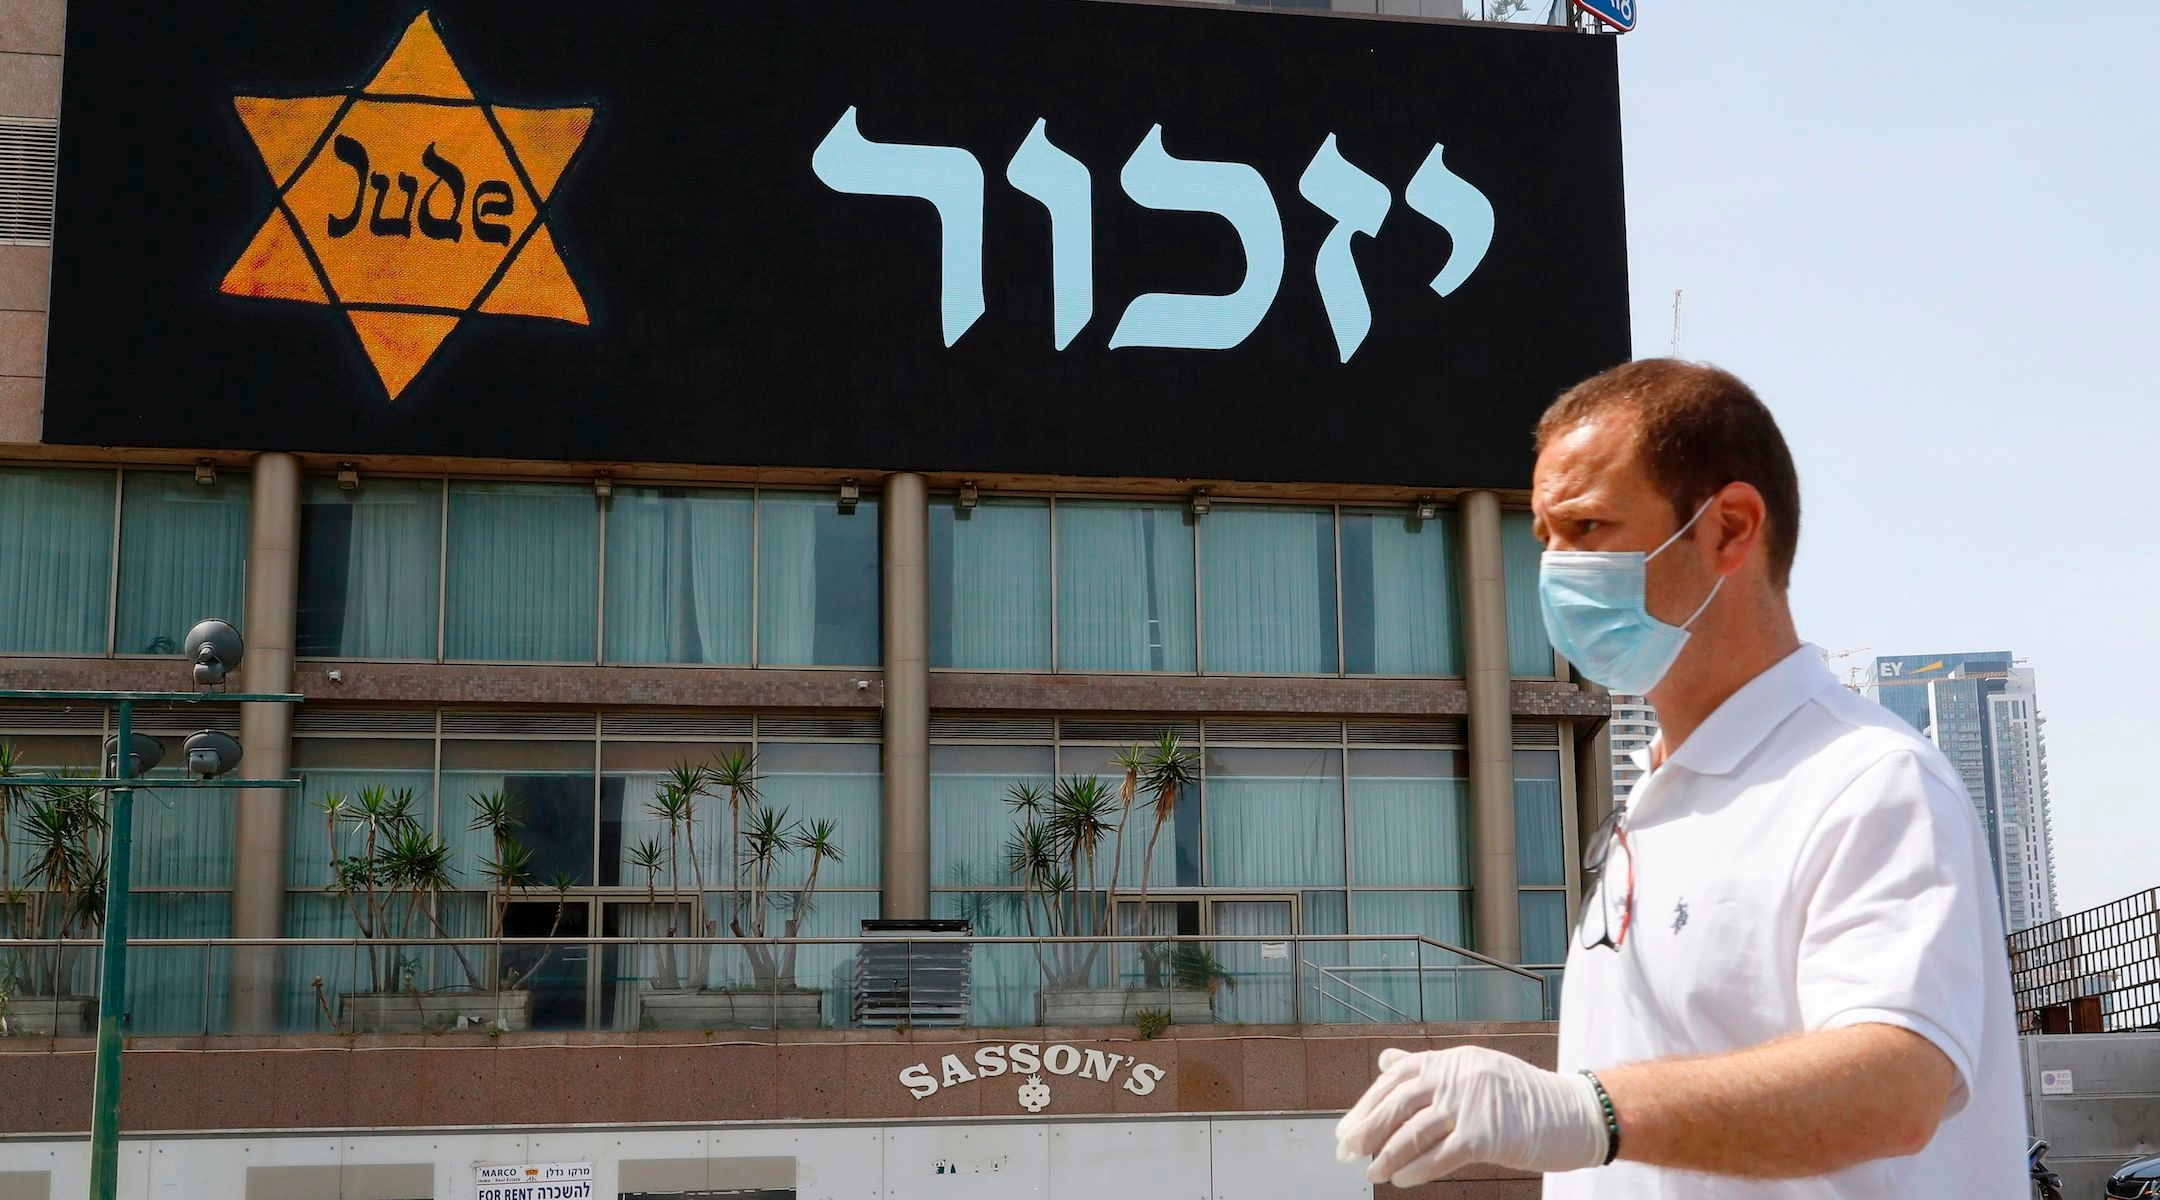 A man in a mask and protective gear stands near a banner depicting a Holocaust-era yellow Star of David in Tel Aviv on April 21, 2020. (Jack Guez/AFP via Getty Images)